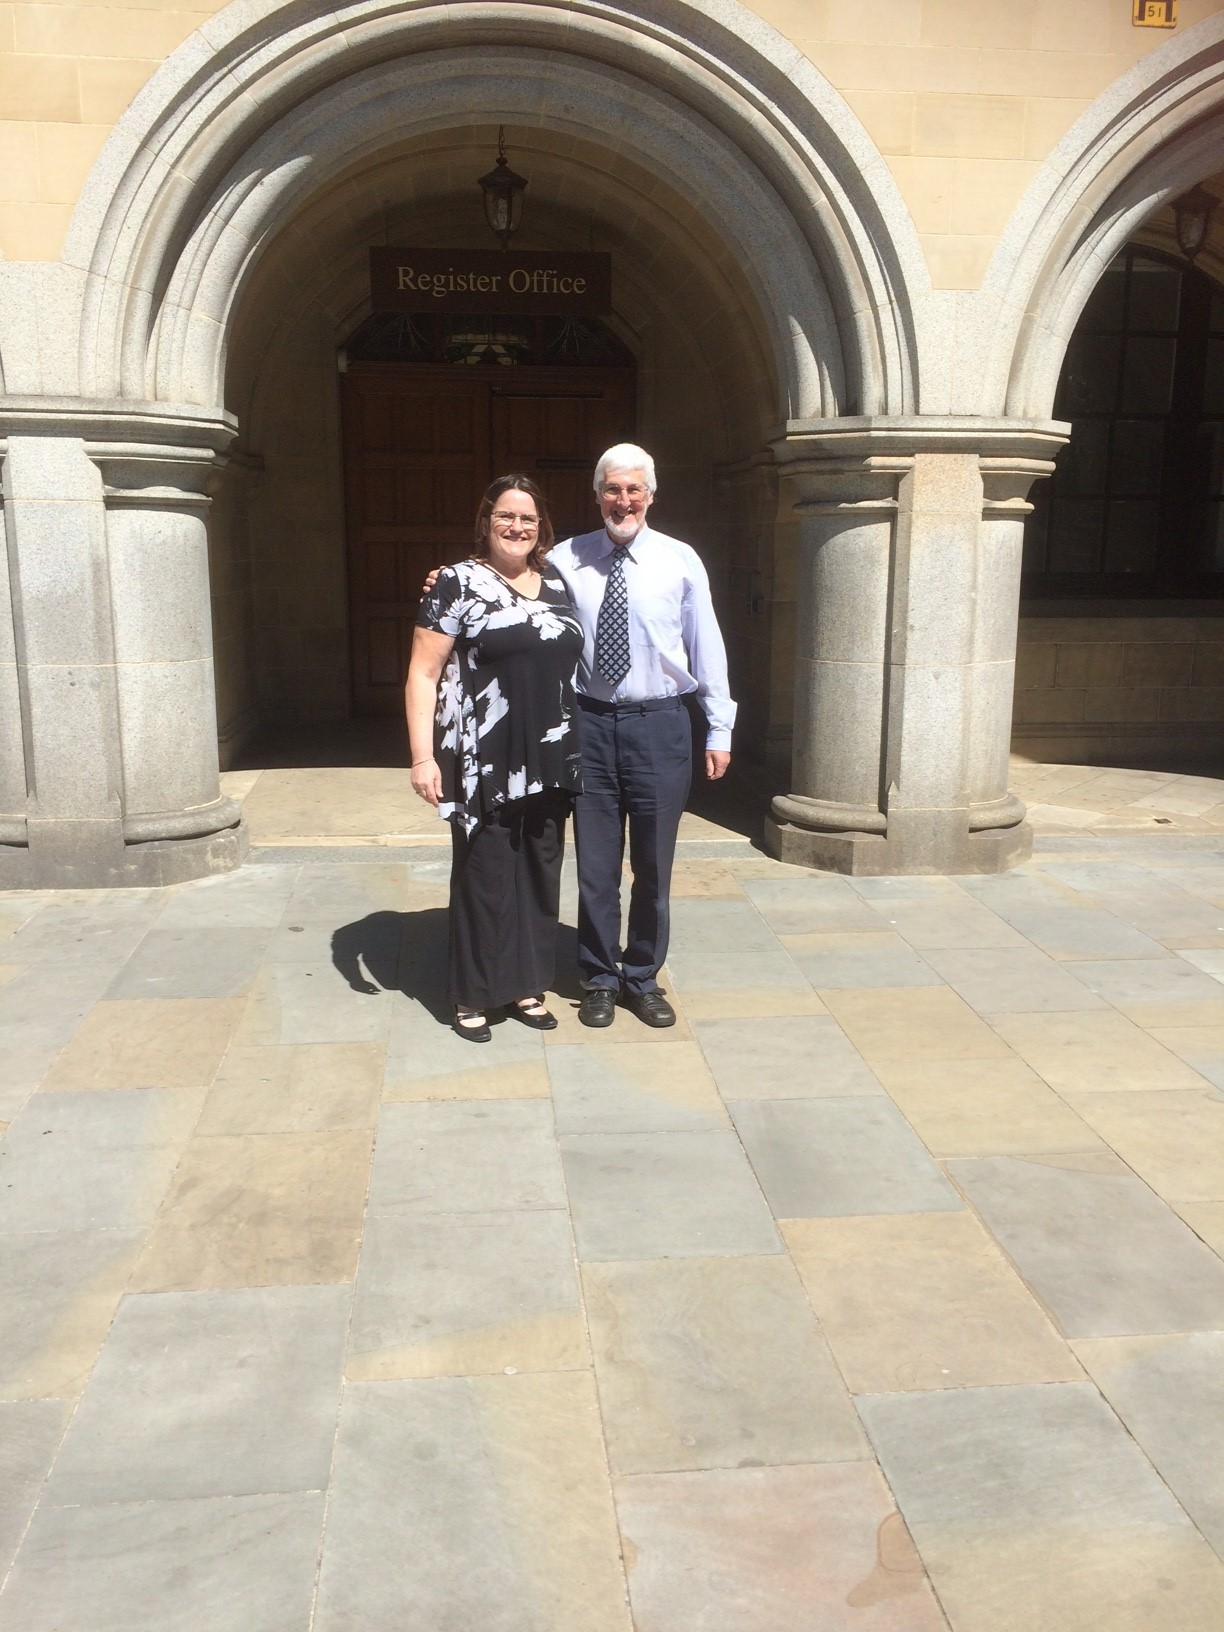 Keighley West ward councillor Cath Bacon with David Wilkinson, one of the people who objected to the plans for the Holme Mill site, outside Bradford City Hall.